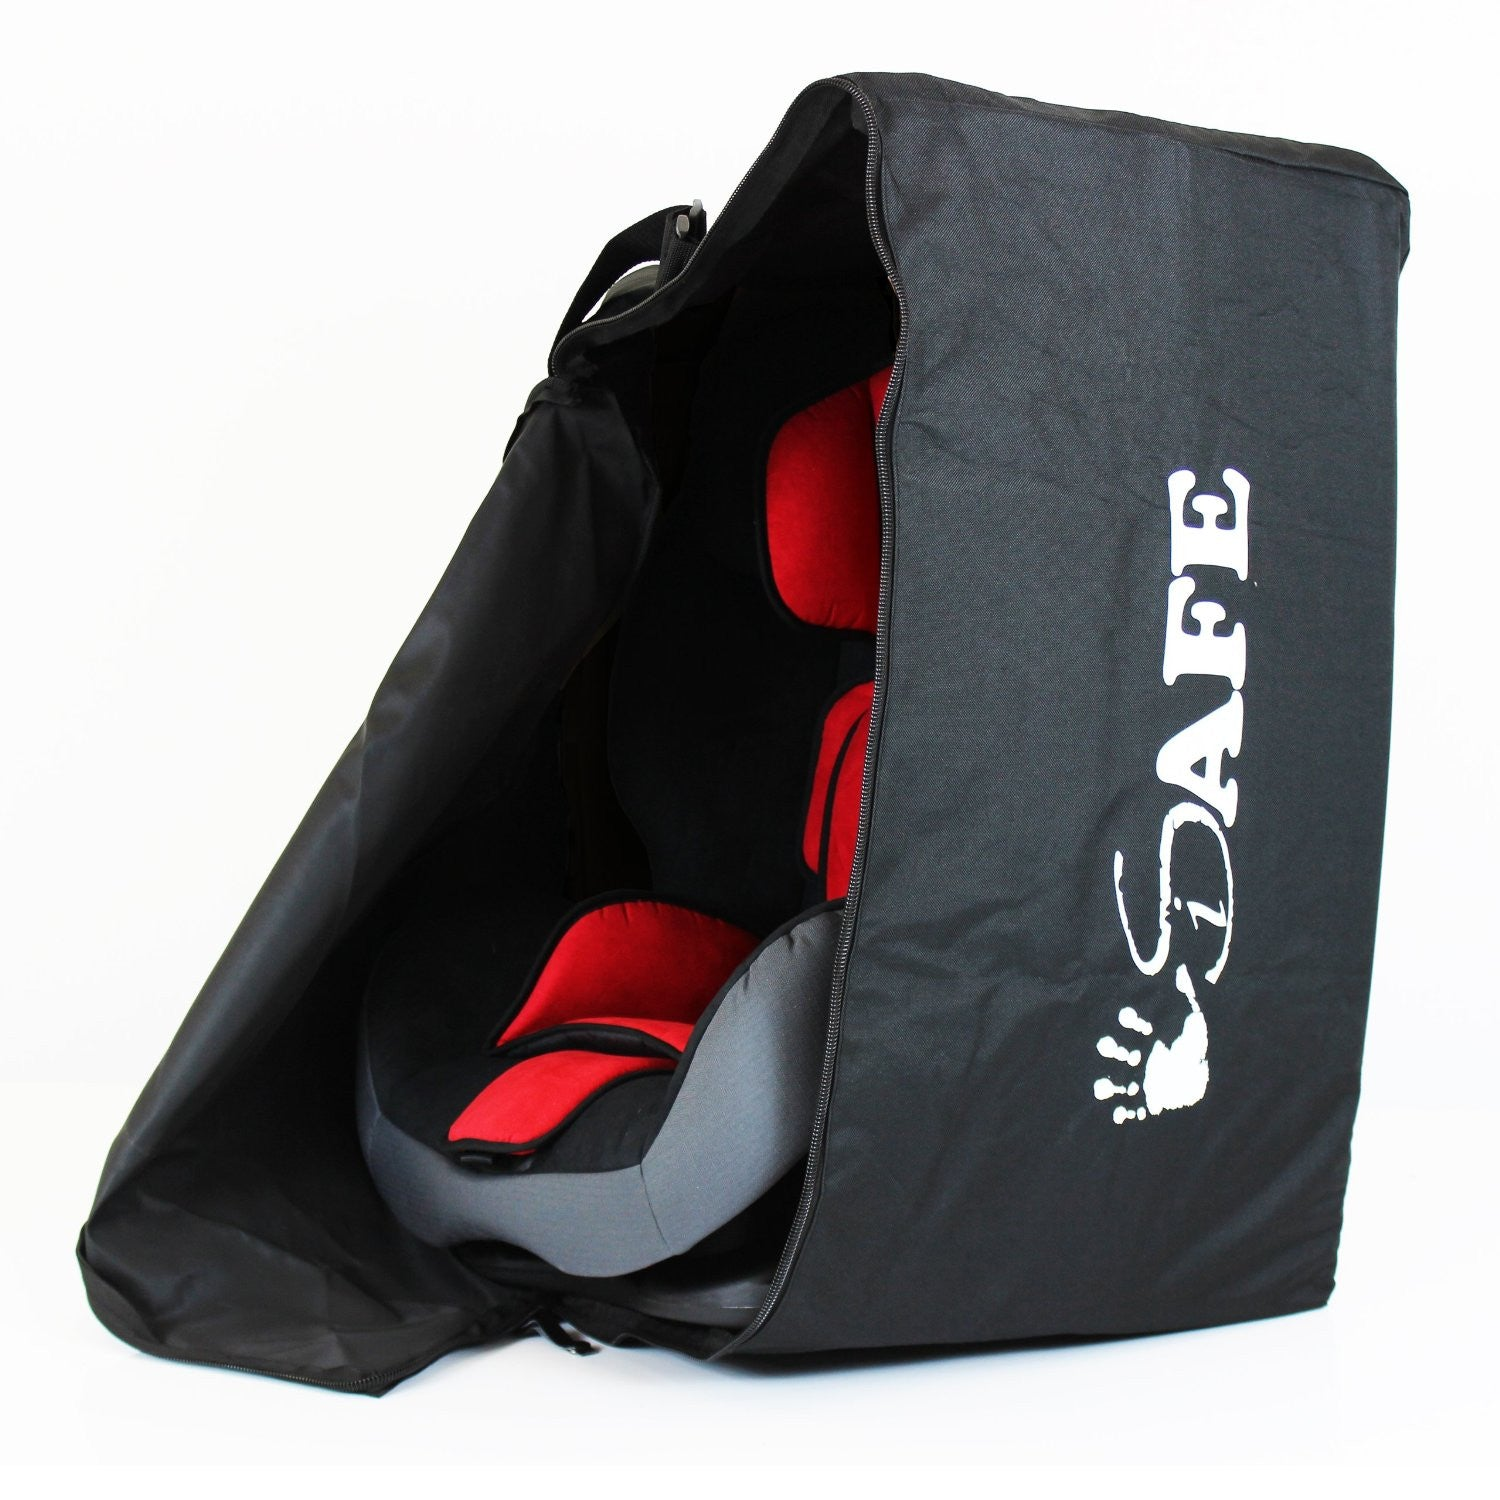 ISafe Universal Carseat Travel Storage Bag For Nania Beline SP Car Seat Frozen